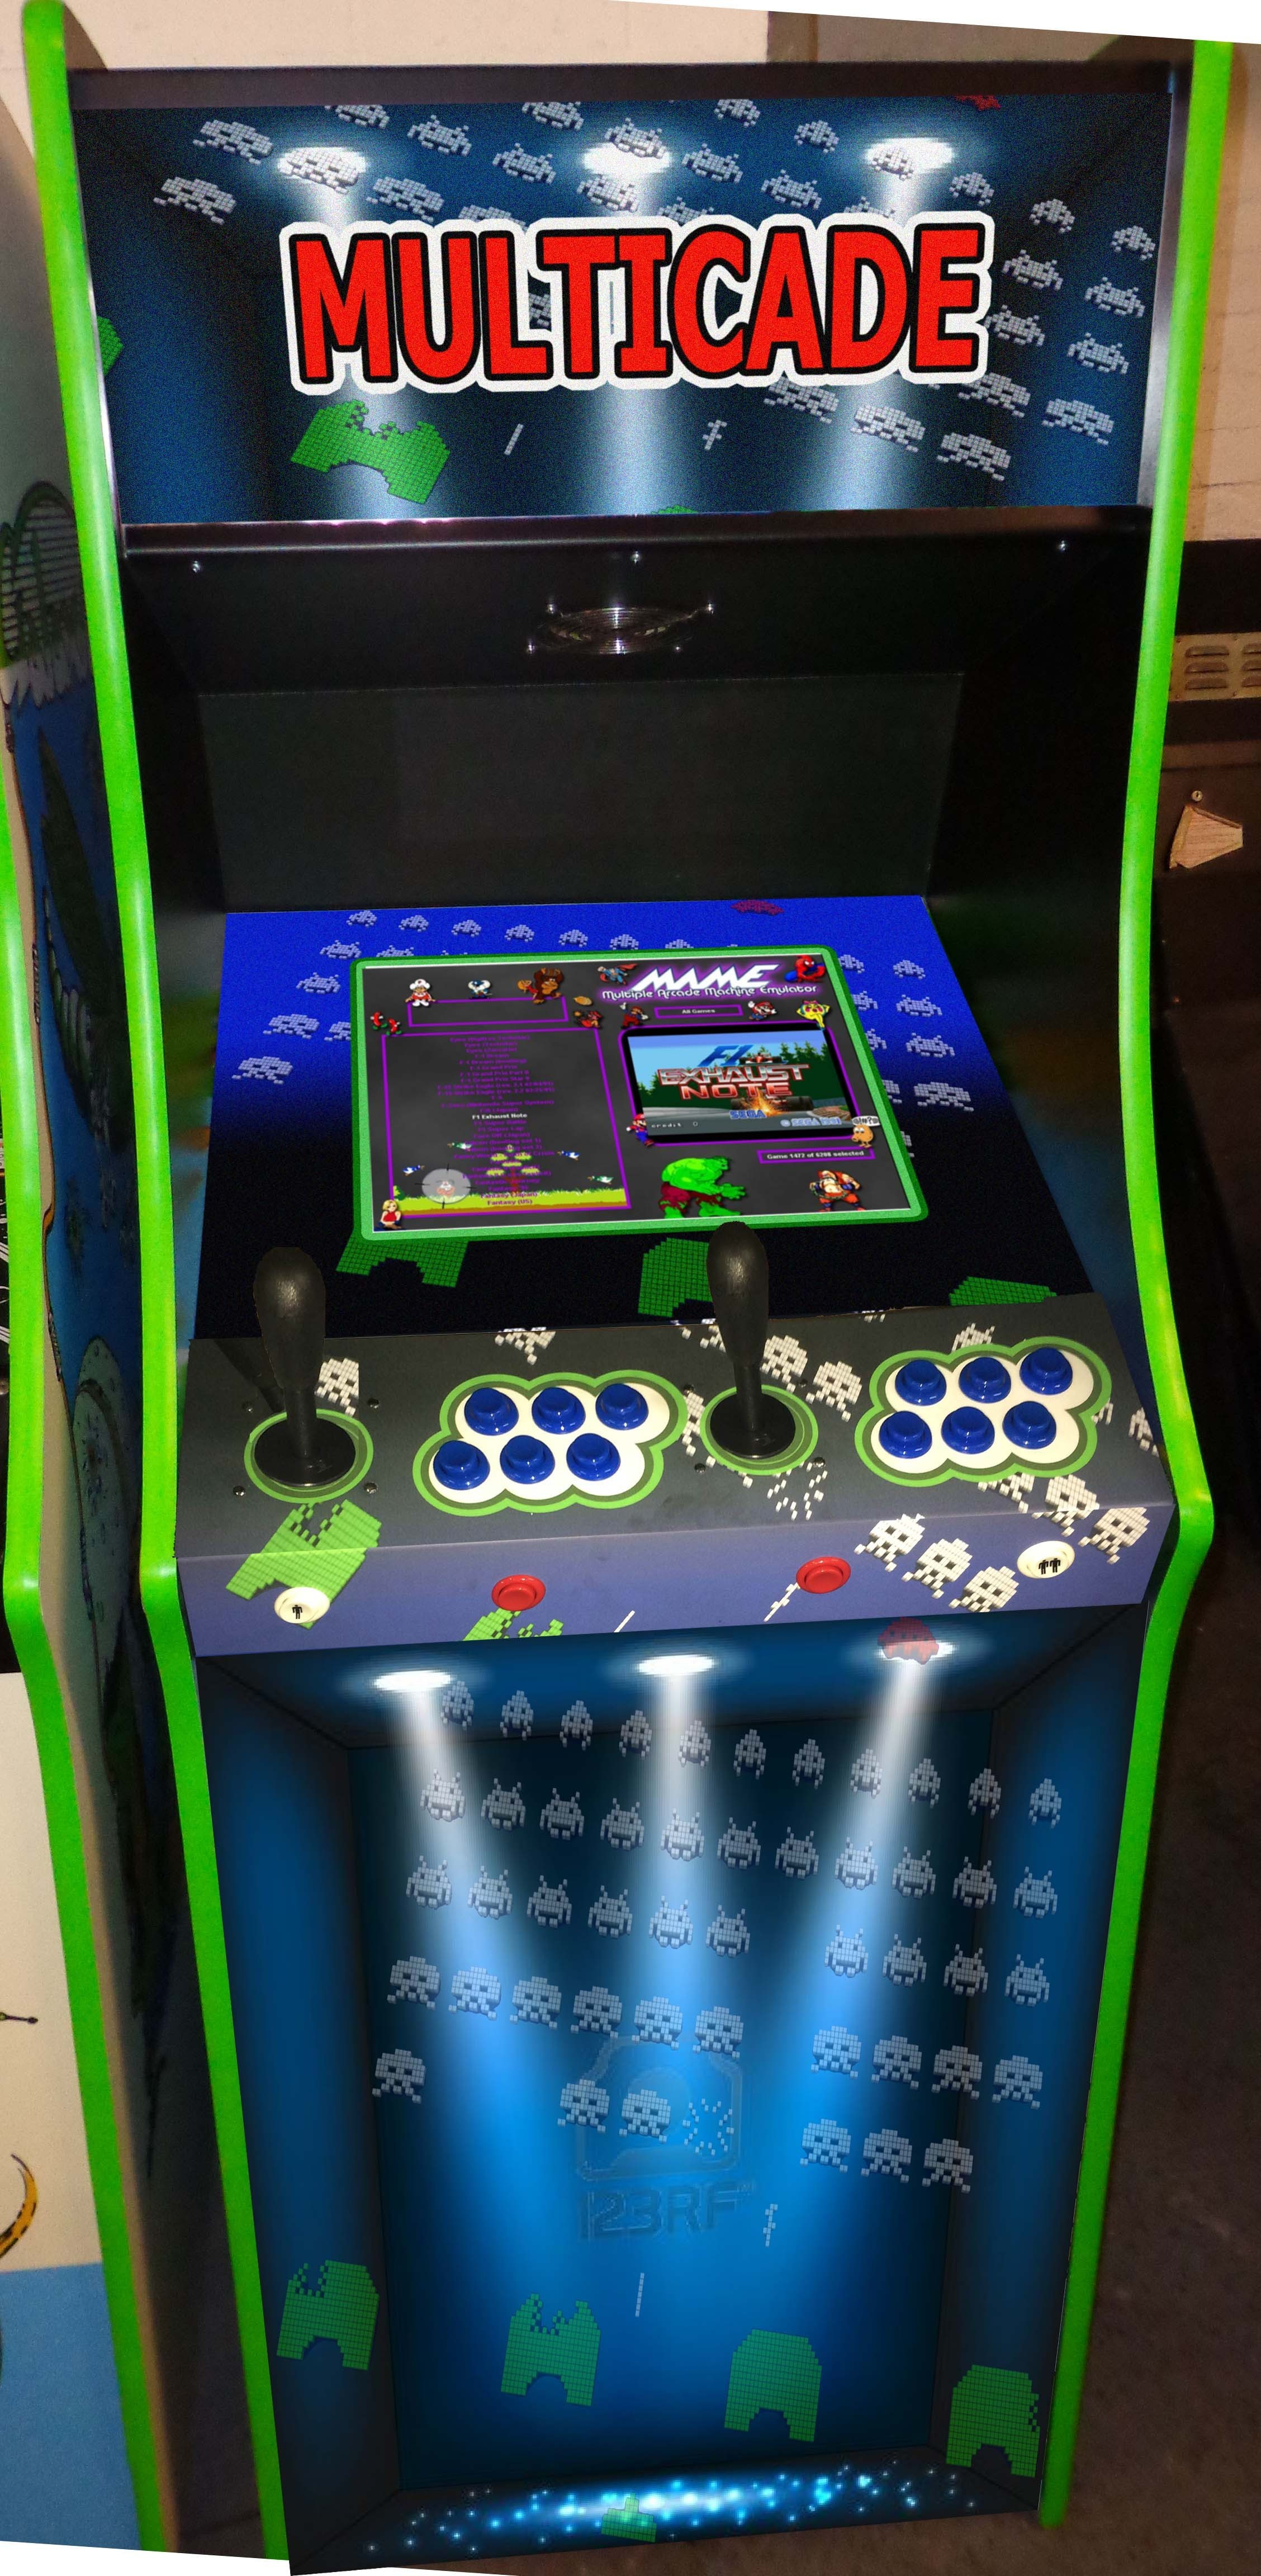 The ultimate arcade machine has now got even better! No need to ...